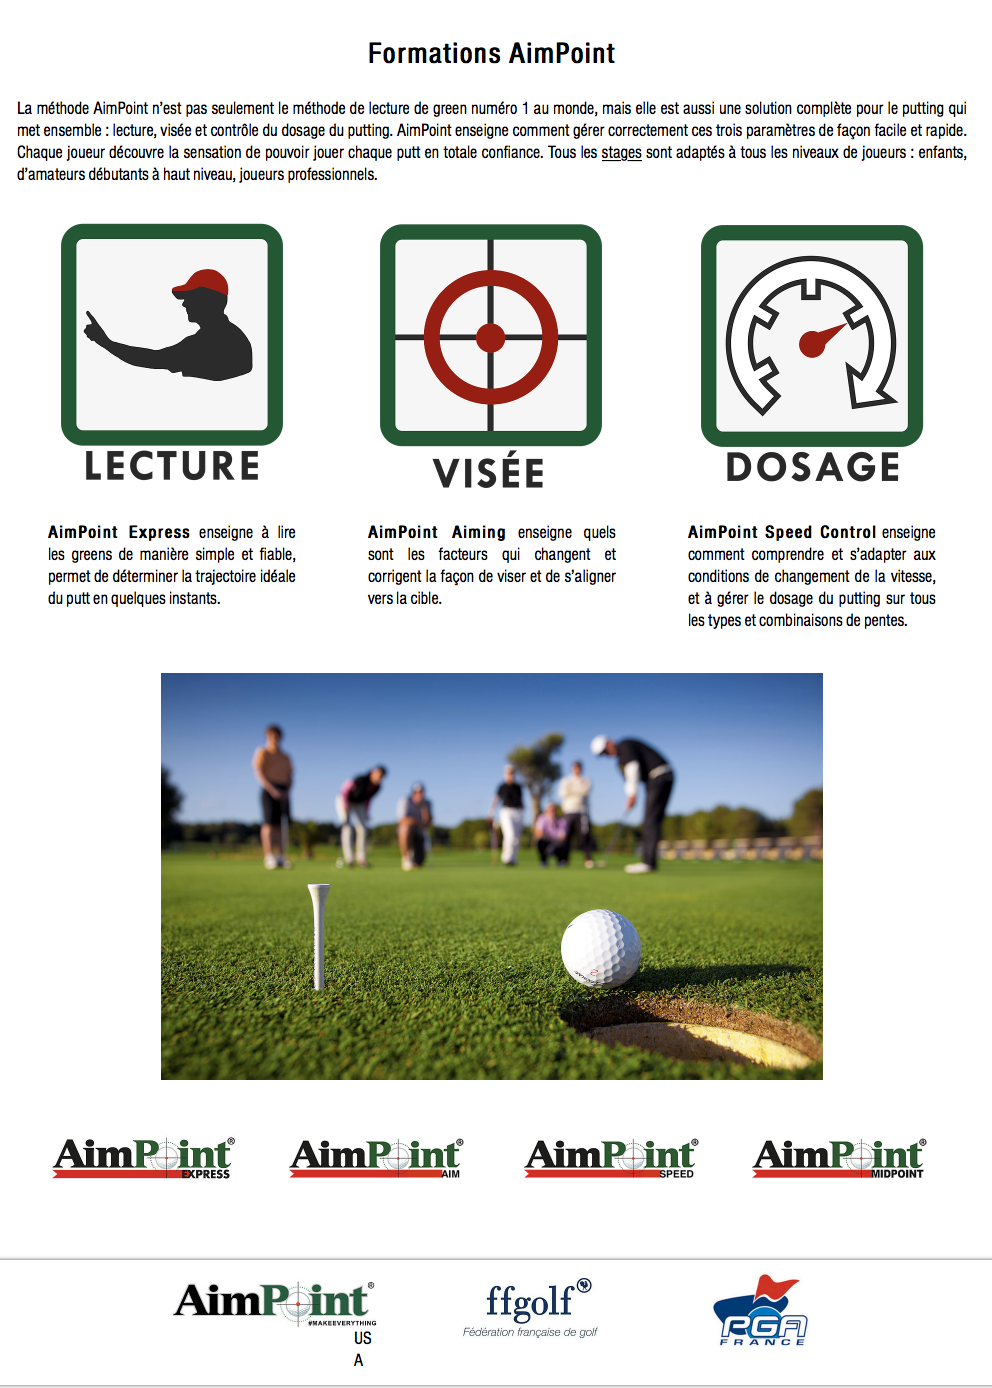 Formations Aimpoint